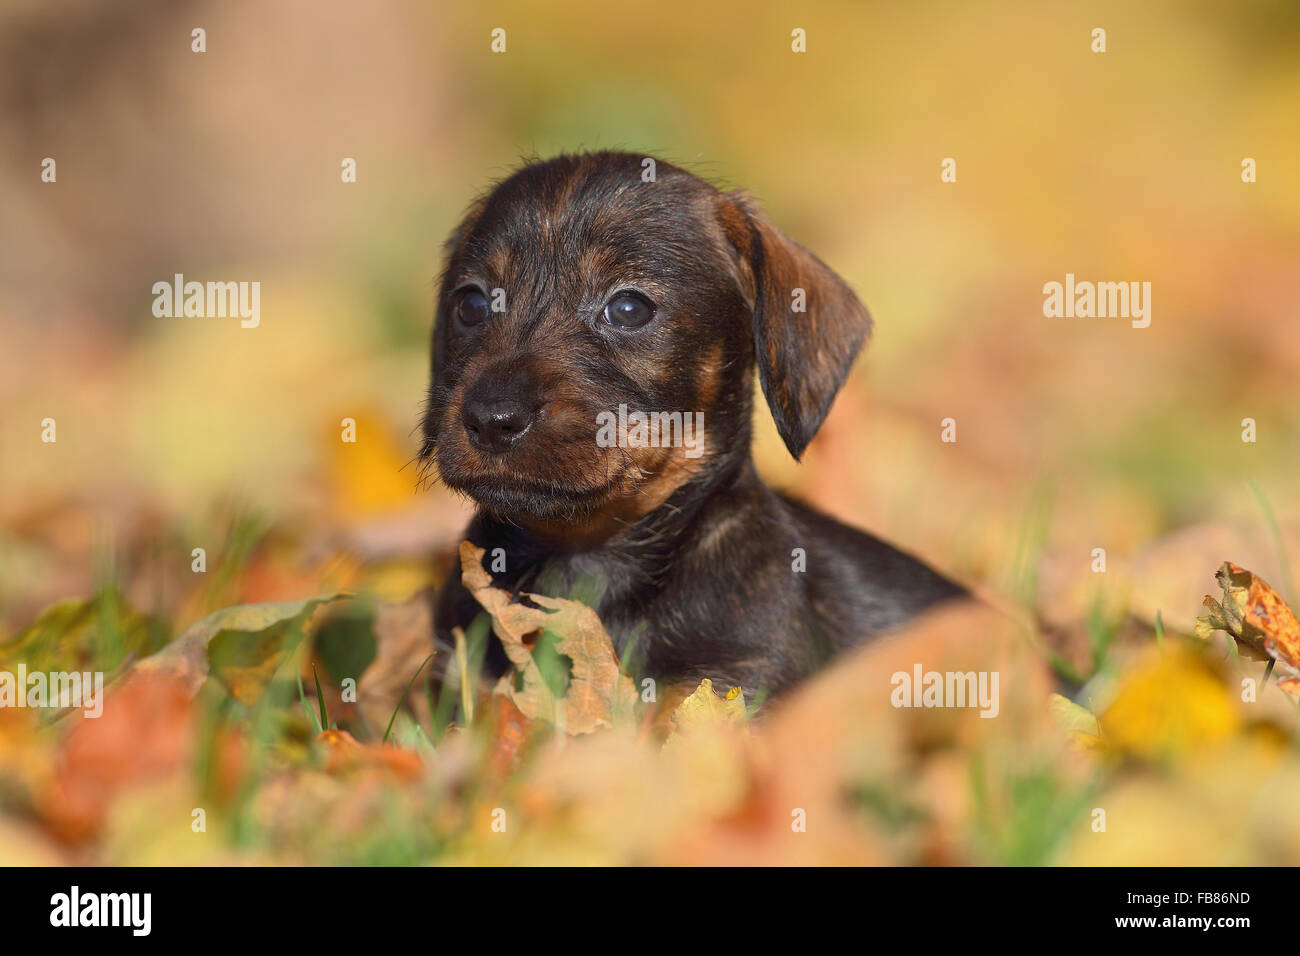 Dachshund (Canis lupus familiaris) puppy lying in Autumn foliage, Germany - Stock Image